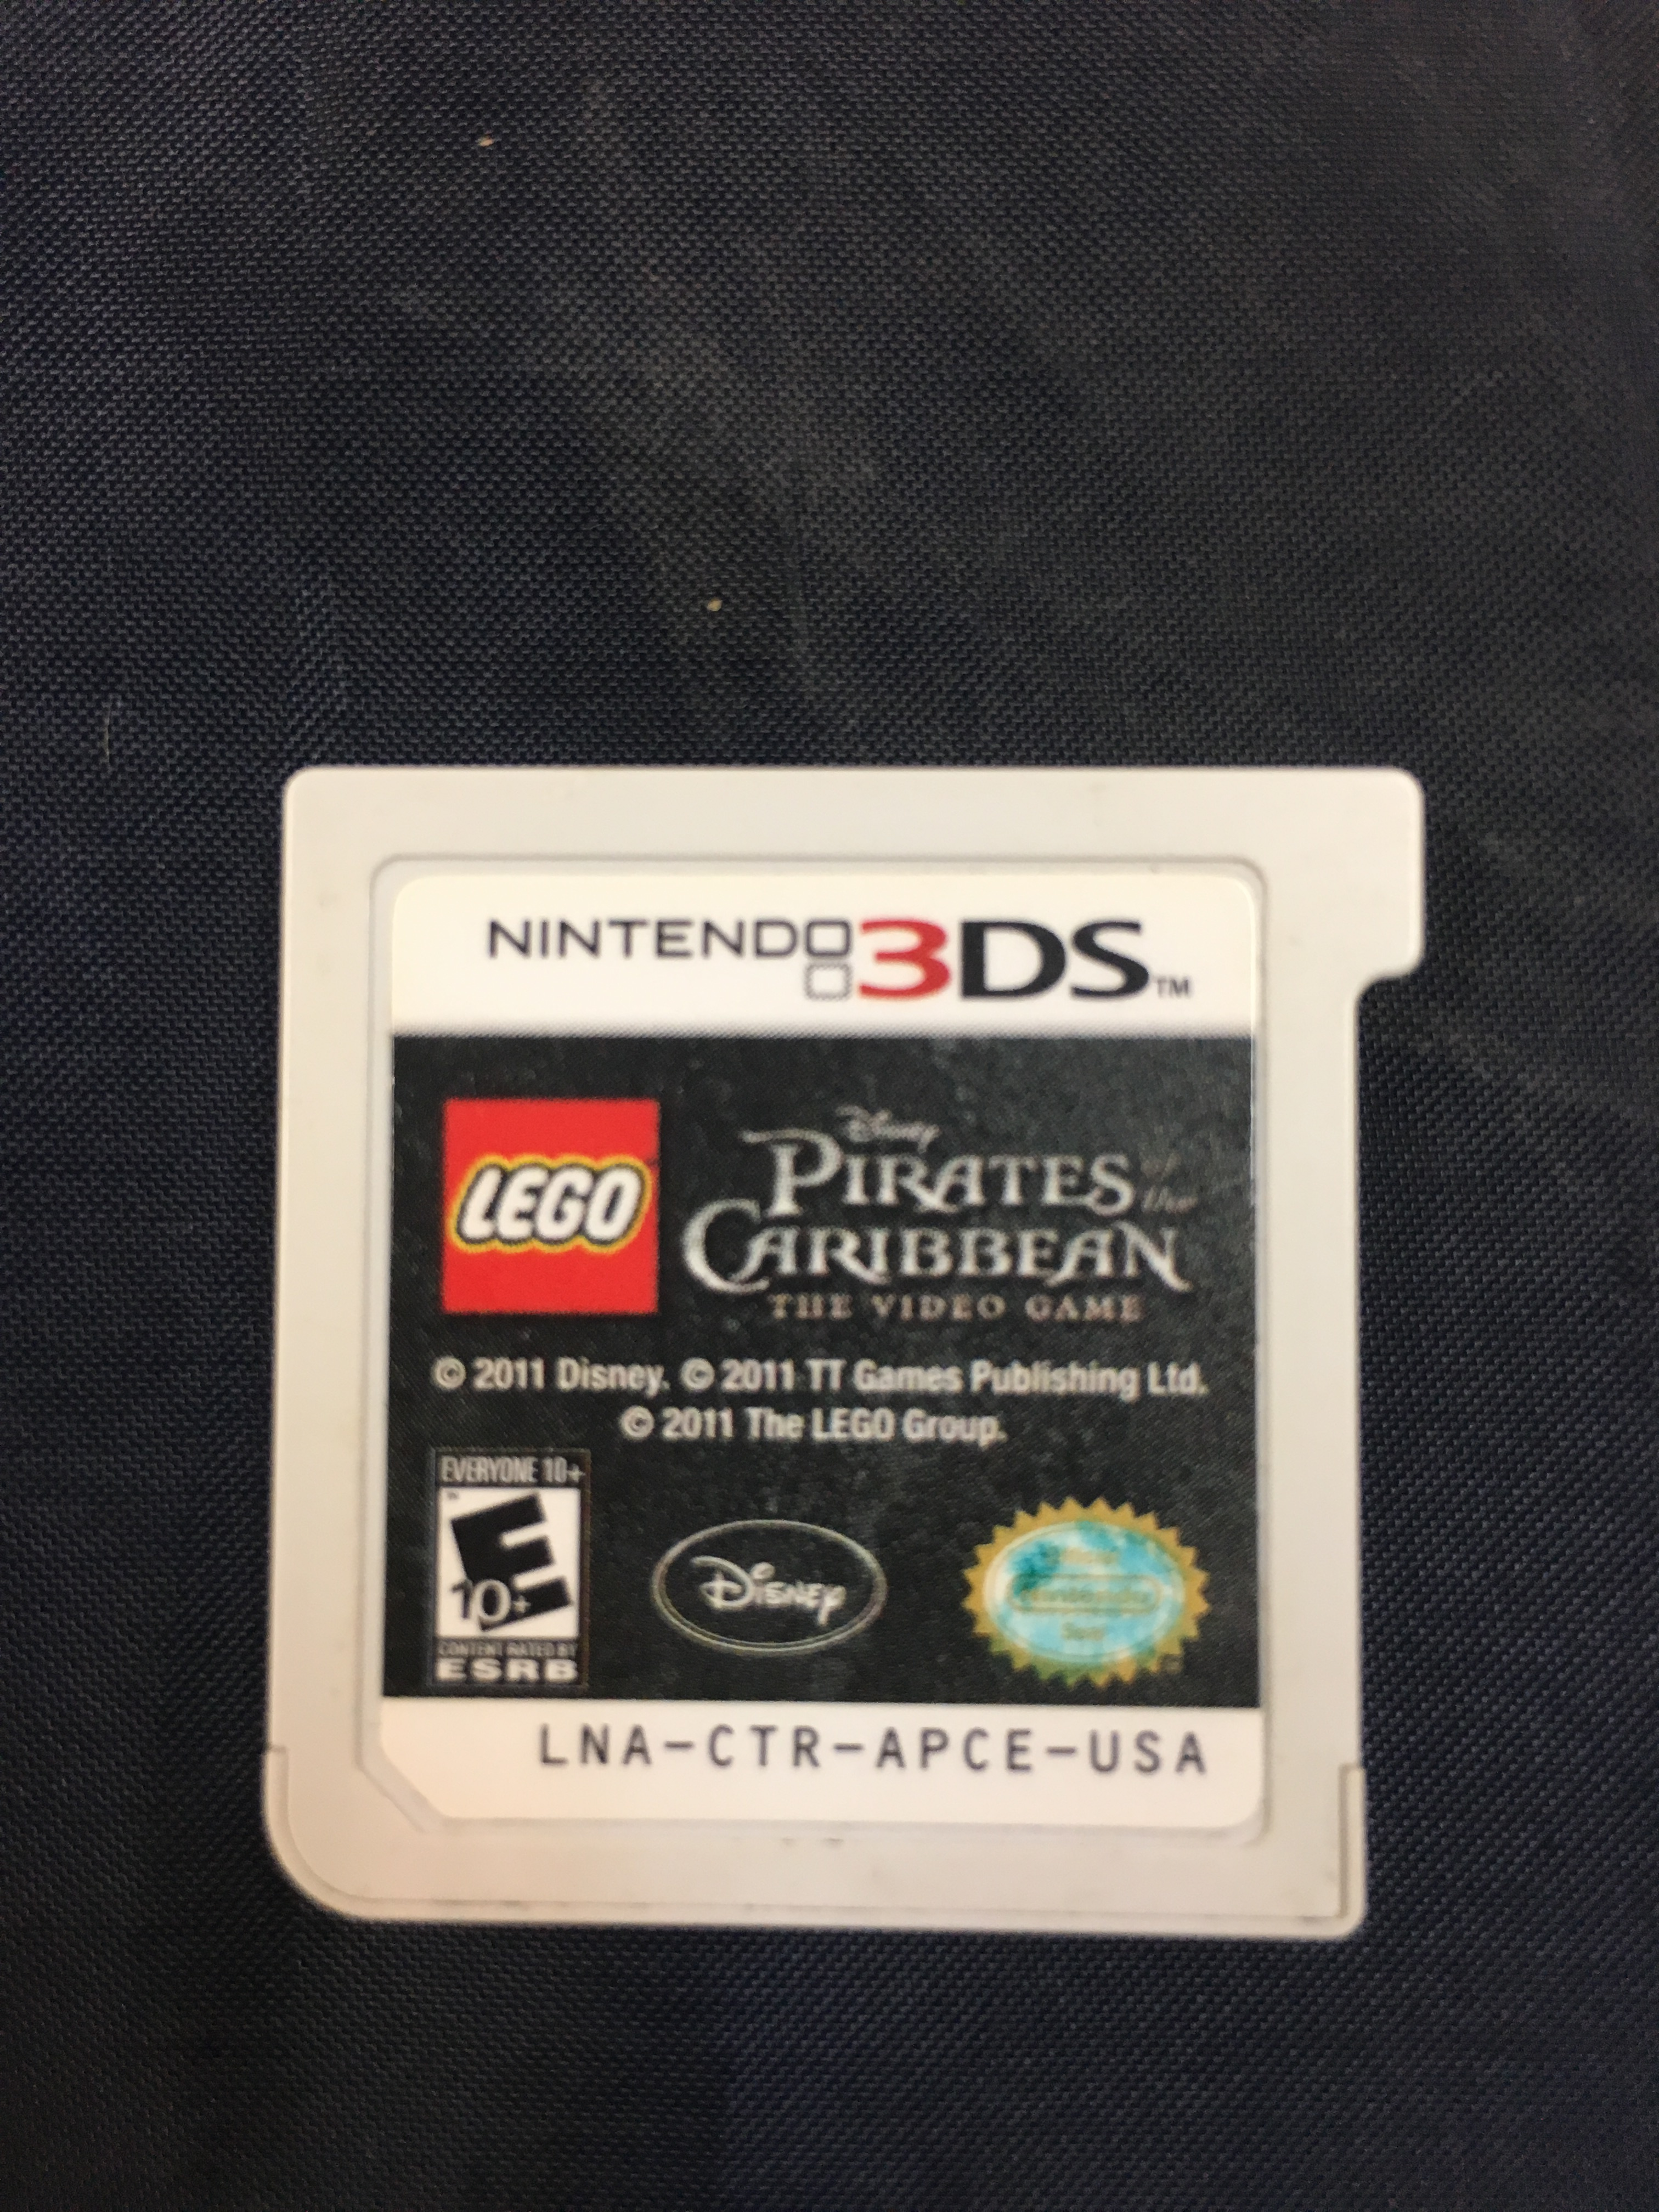 NINTENDO 3DS GAME:  PIRATES OF THE CARIBBEAN THE VIDEO GAME